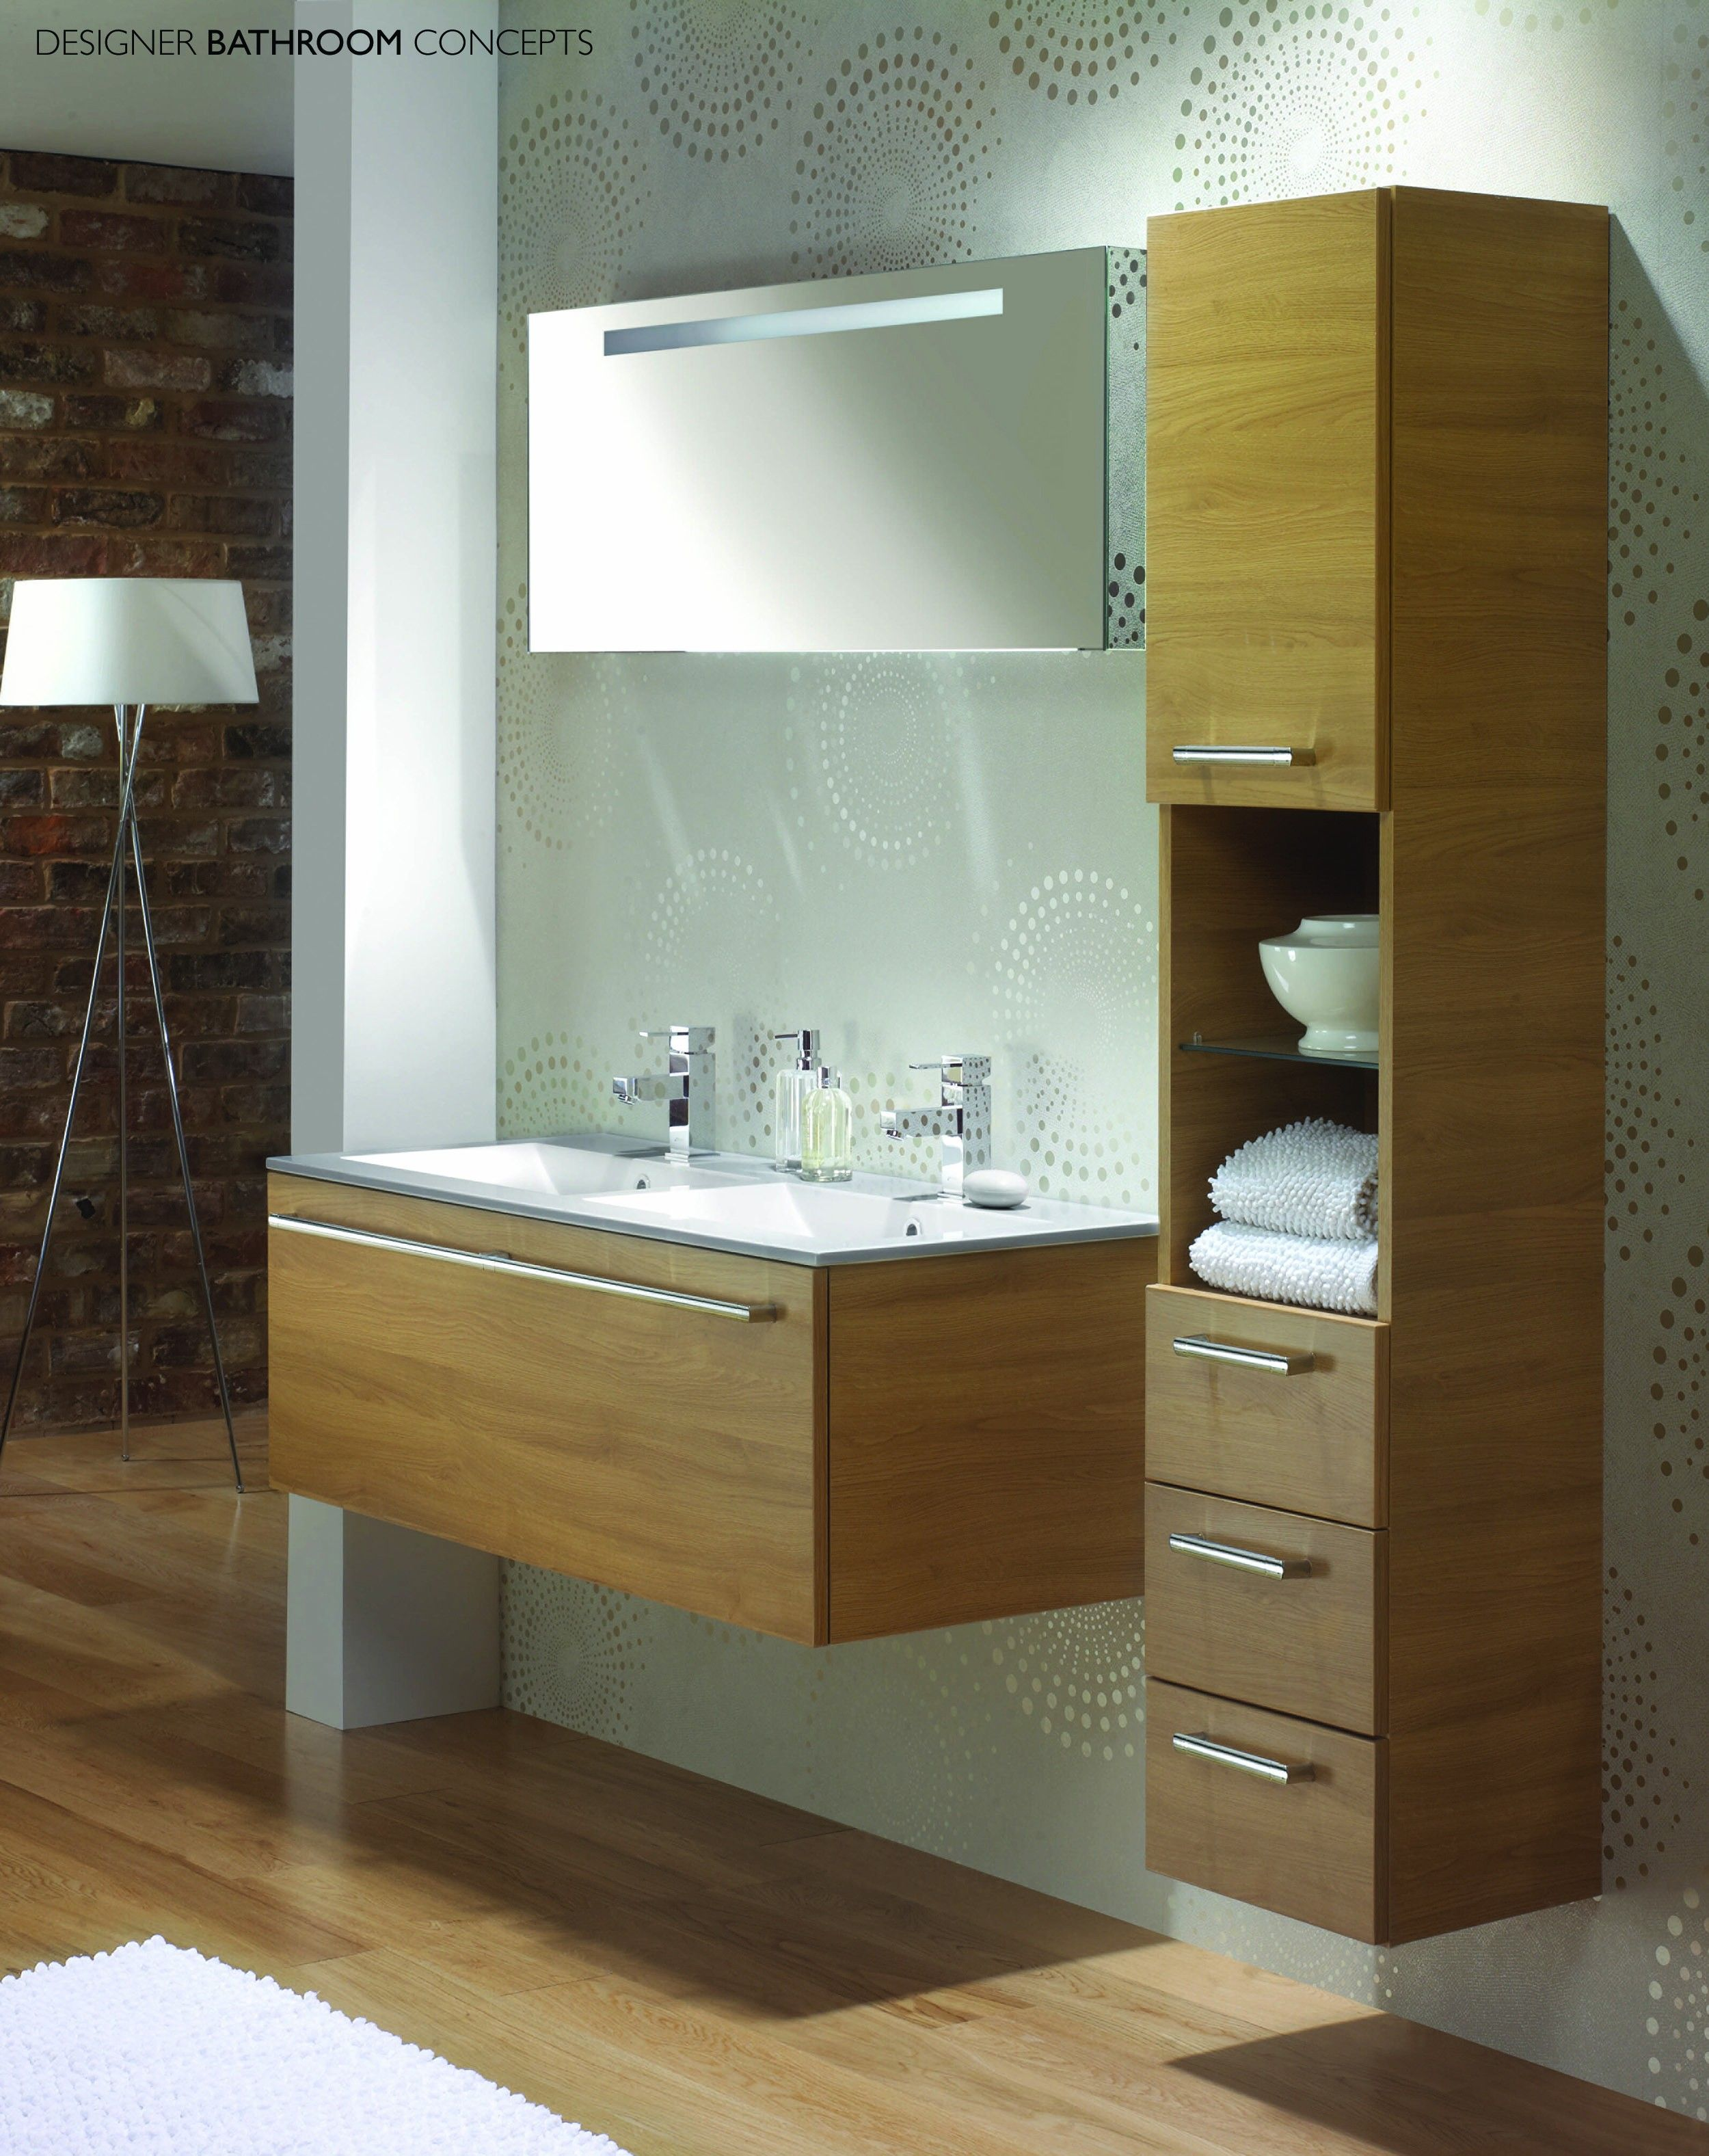 Http://tovtov.com/wp Content/uploads/furniture Bathroom  Modern Brown Plywood Floating Vanity With Double White Washbasin And Freestanding To.